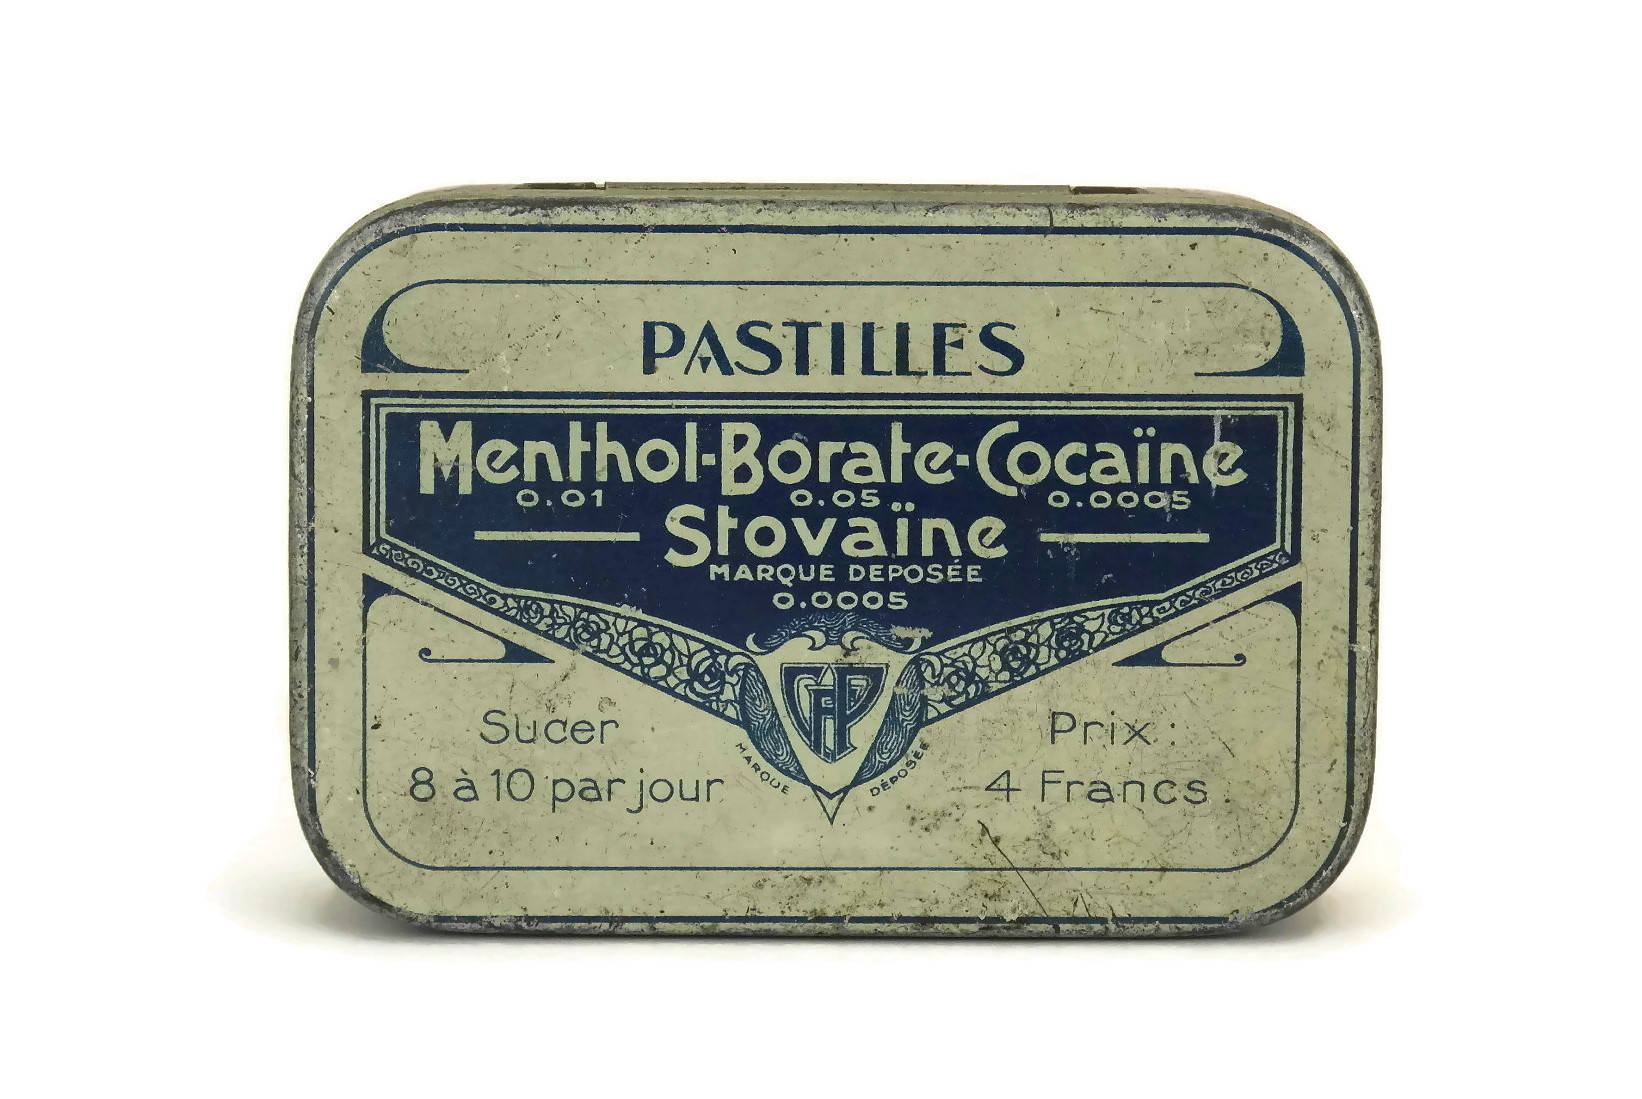 Antique French Medicine Pill Box. Menthol Borate Cocaine Stovaine Medical  Tin Box. Metal Drug Box. French Apothecary Cabinet.